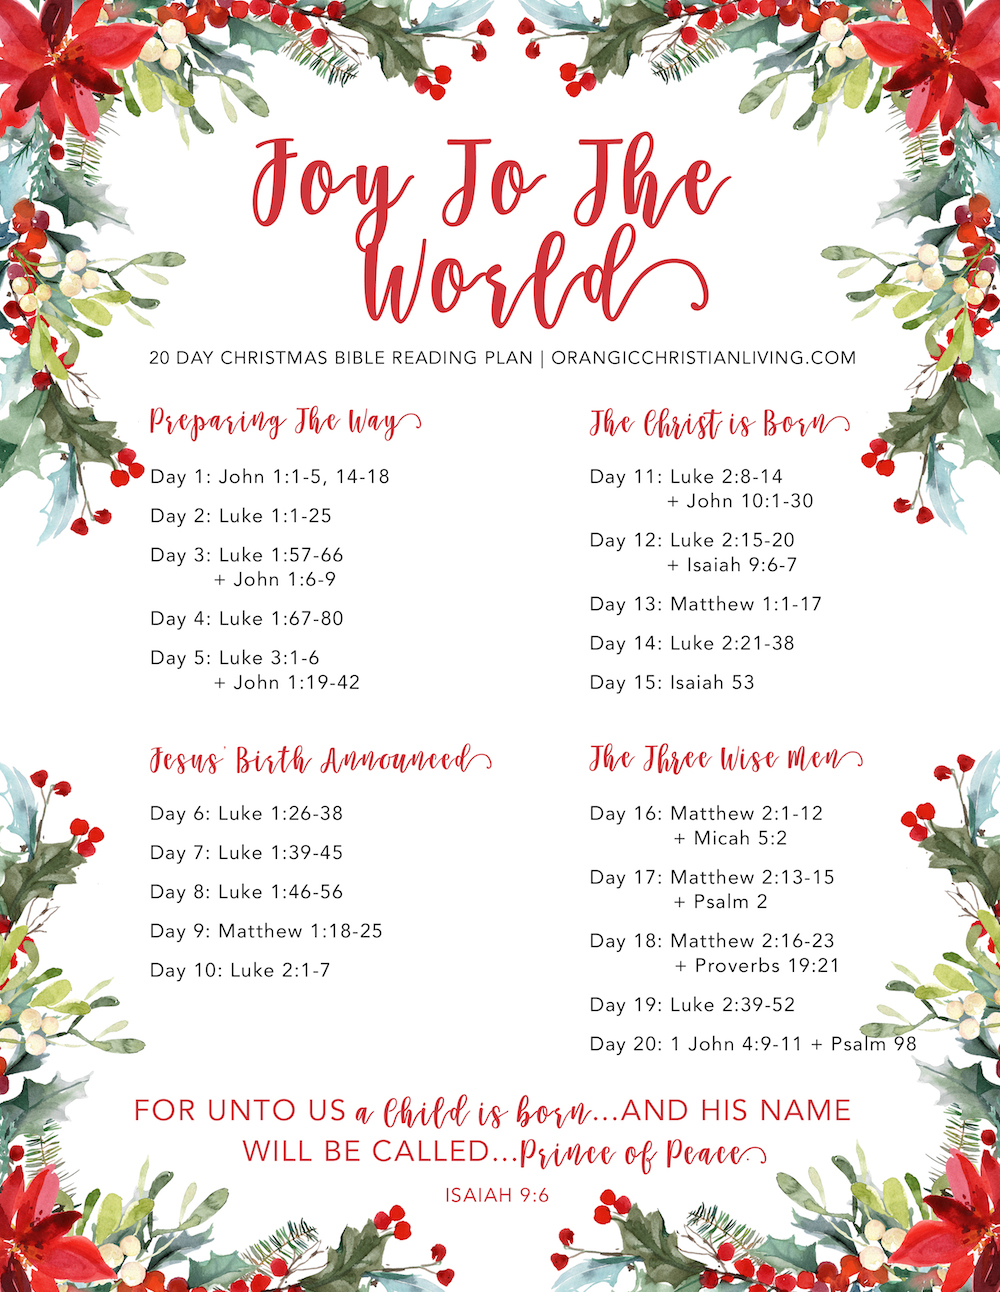 Christmas Bible Reading Plan: Joy To The World | Organic Christian ...